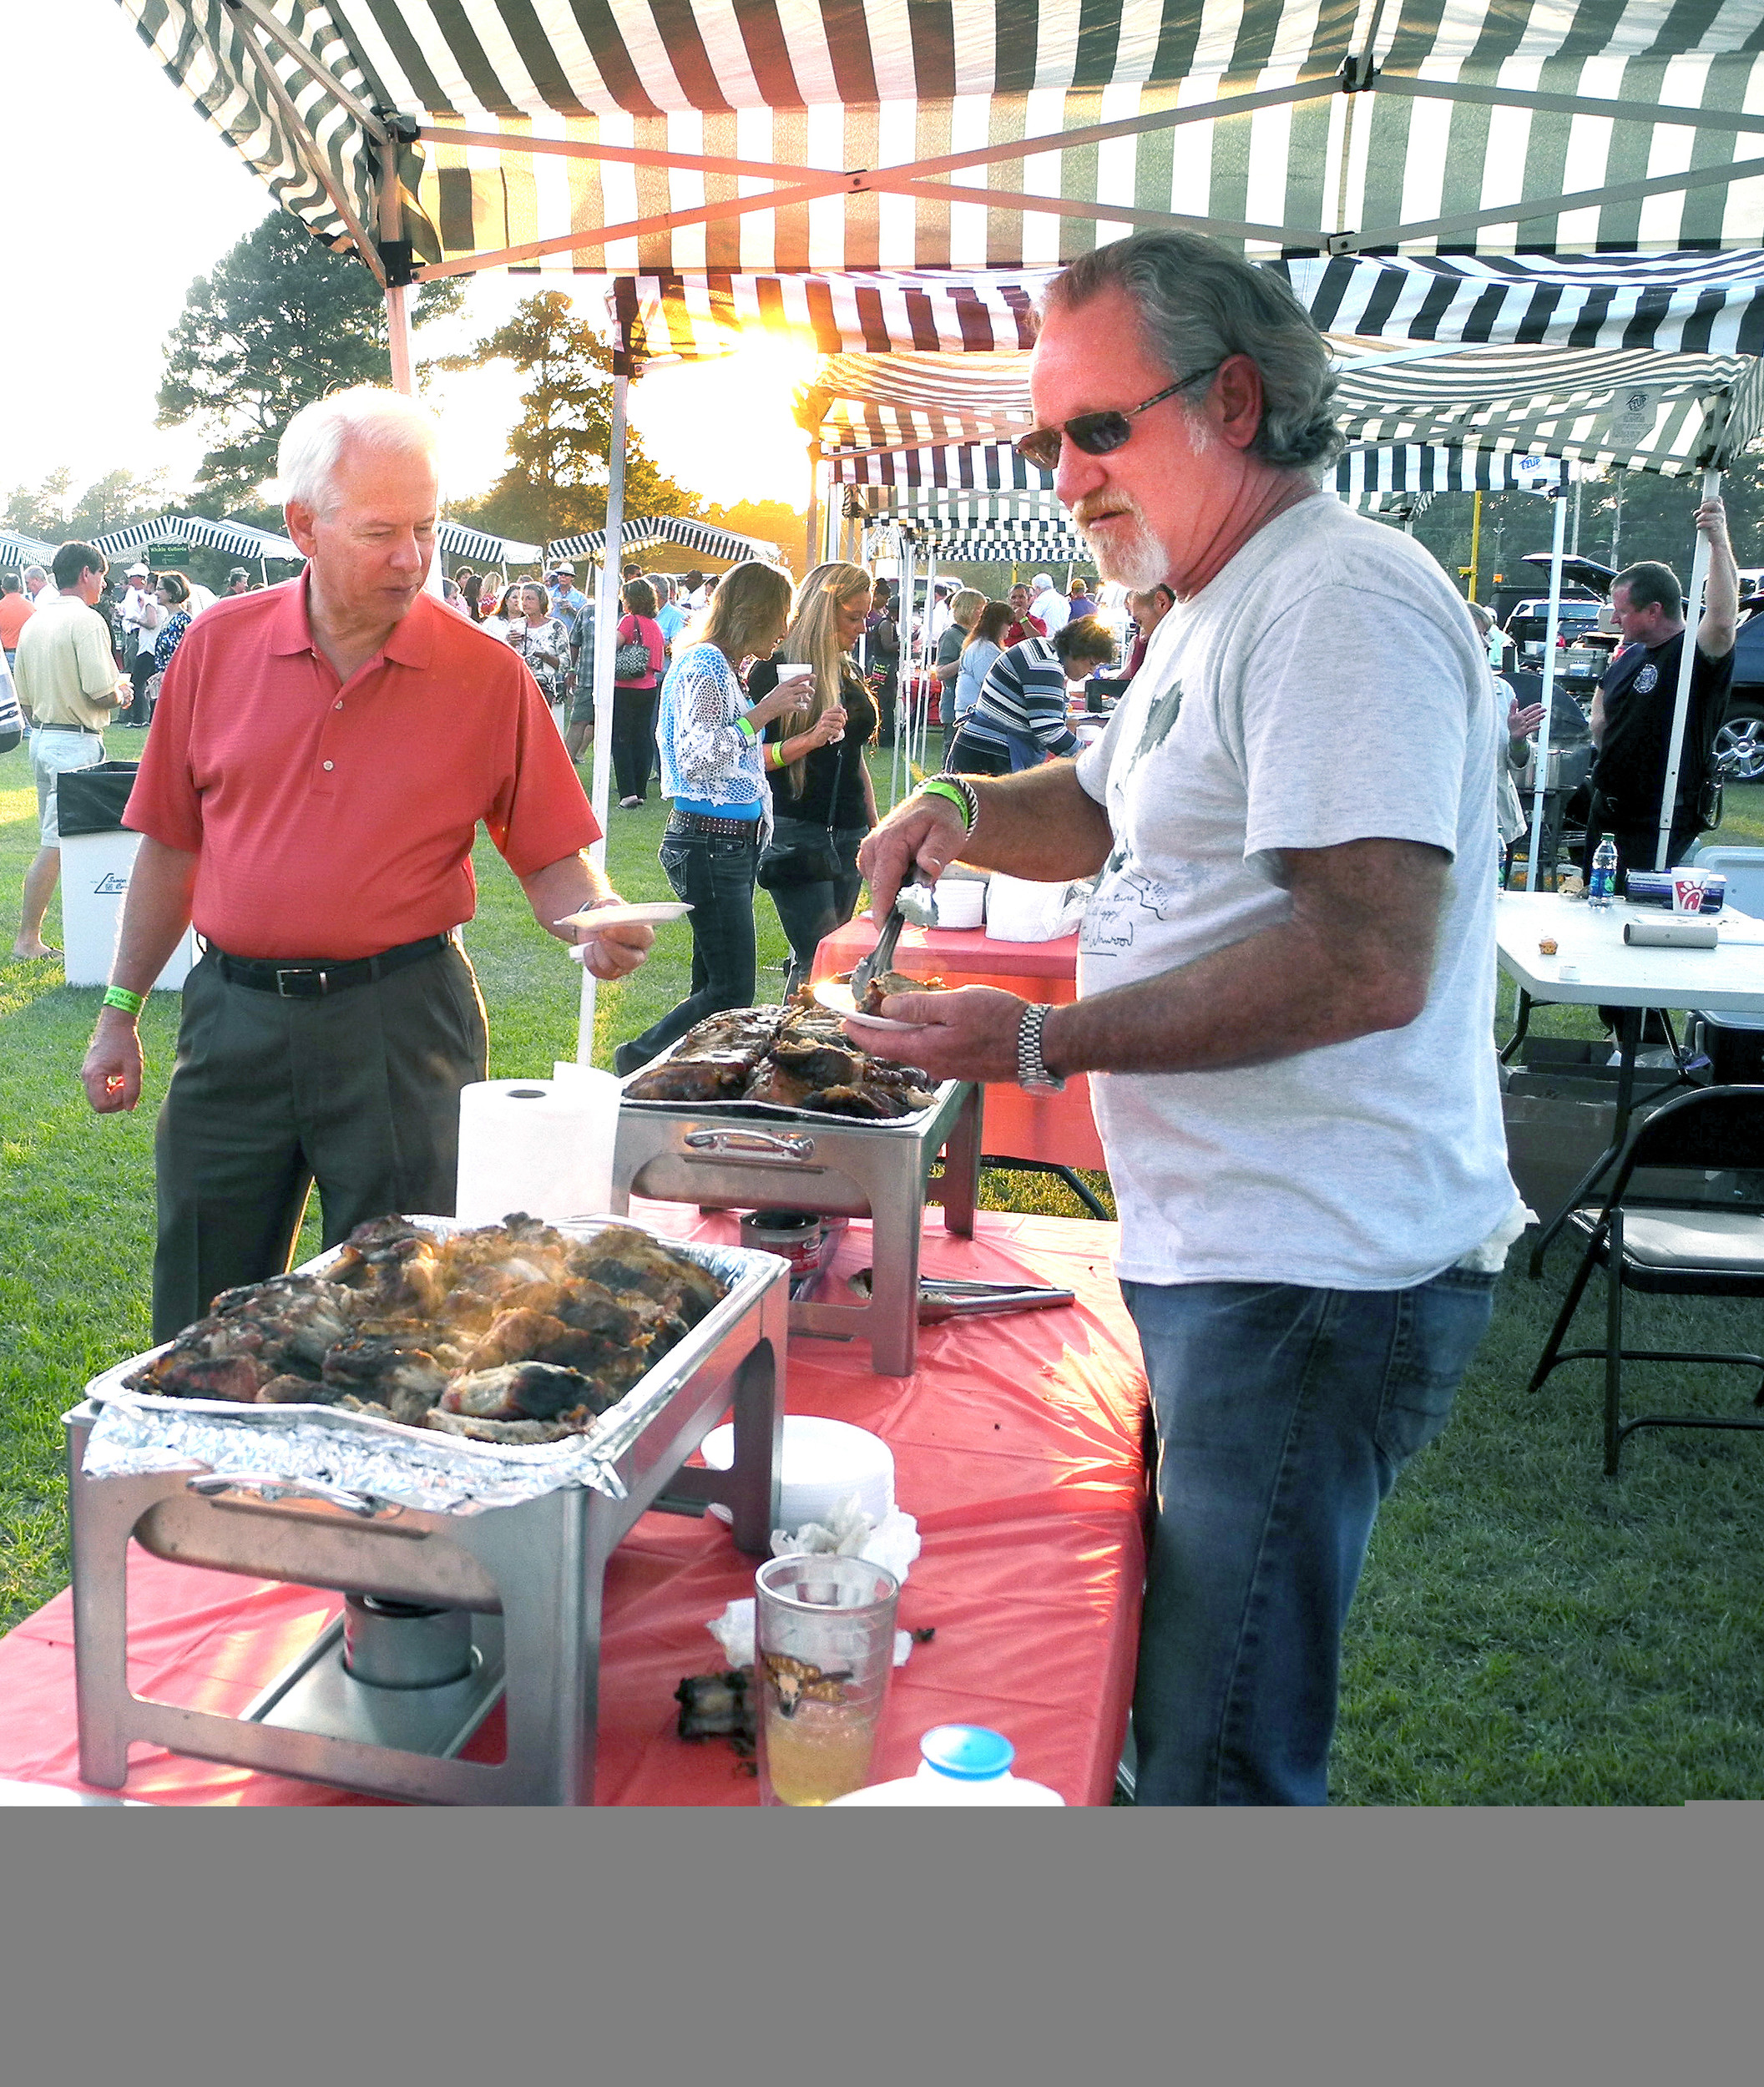 Ricky McLeod serves up some baby back ribs to Talmadge Tobias at a past Fall Feast. McLeod's restaurant, Willie Sue's, will be serving some of its specialties at this year's Fall Feast on Sept. 21.